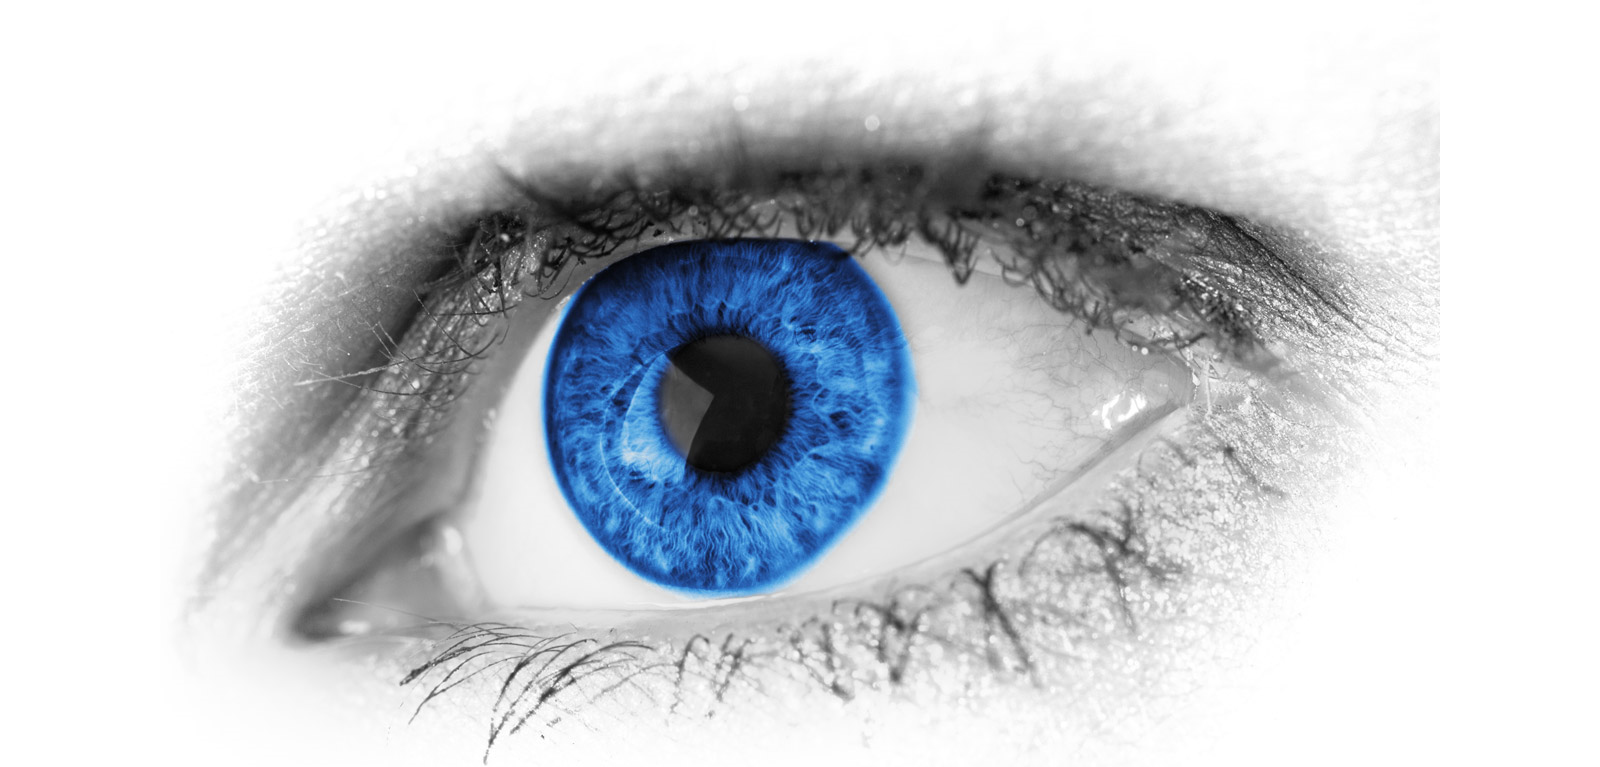 Cataract removal research shows success beyond current treatment options